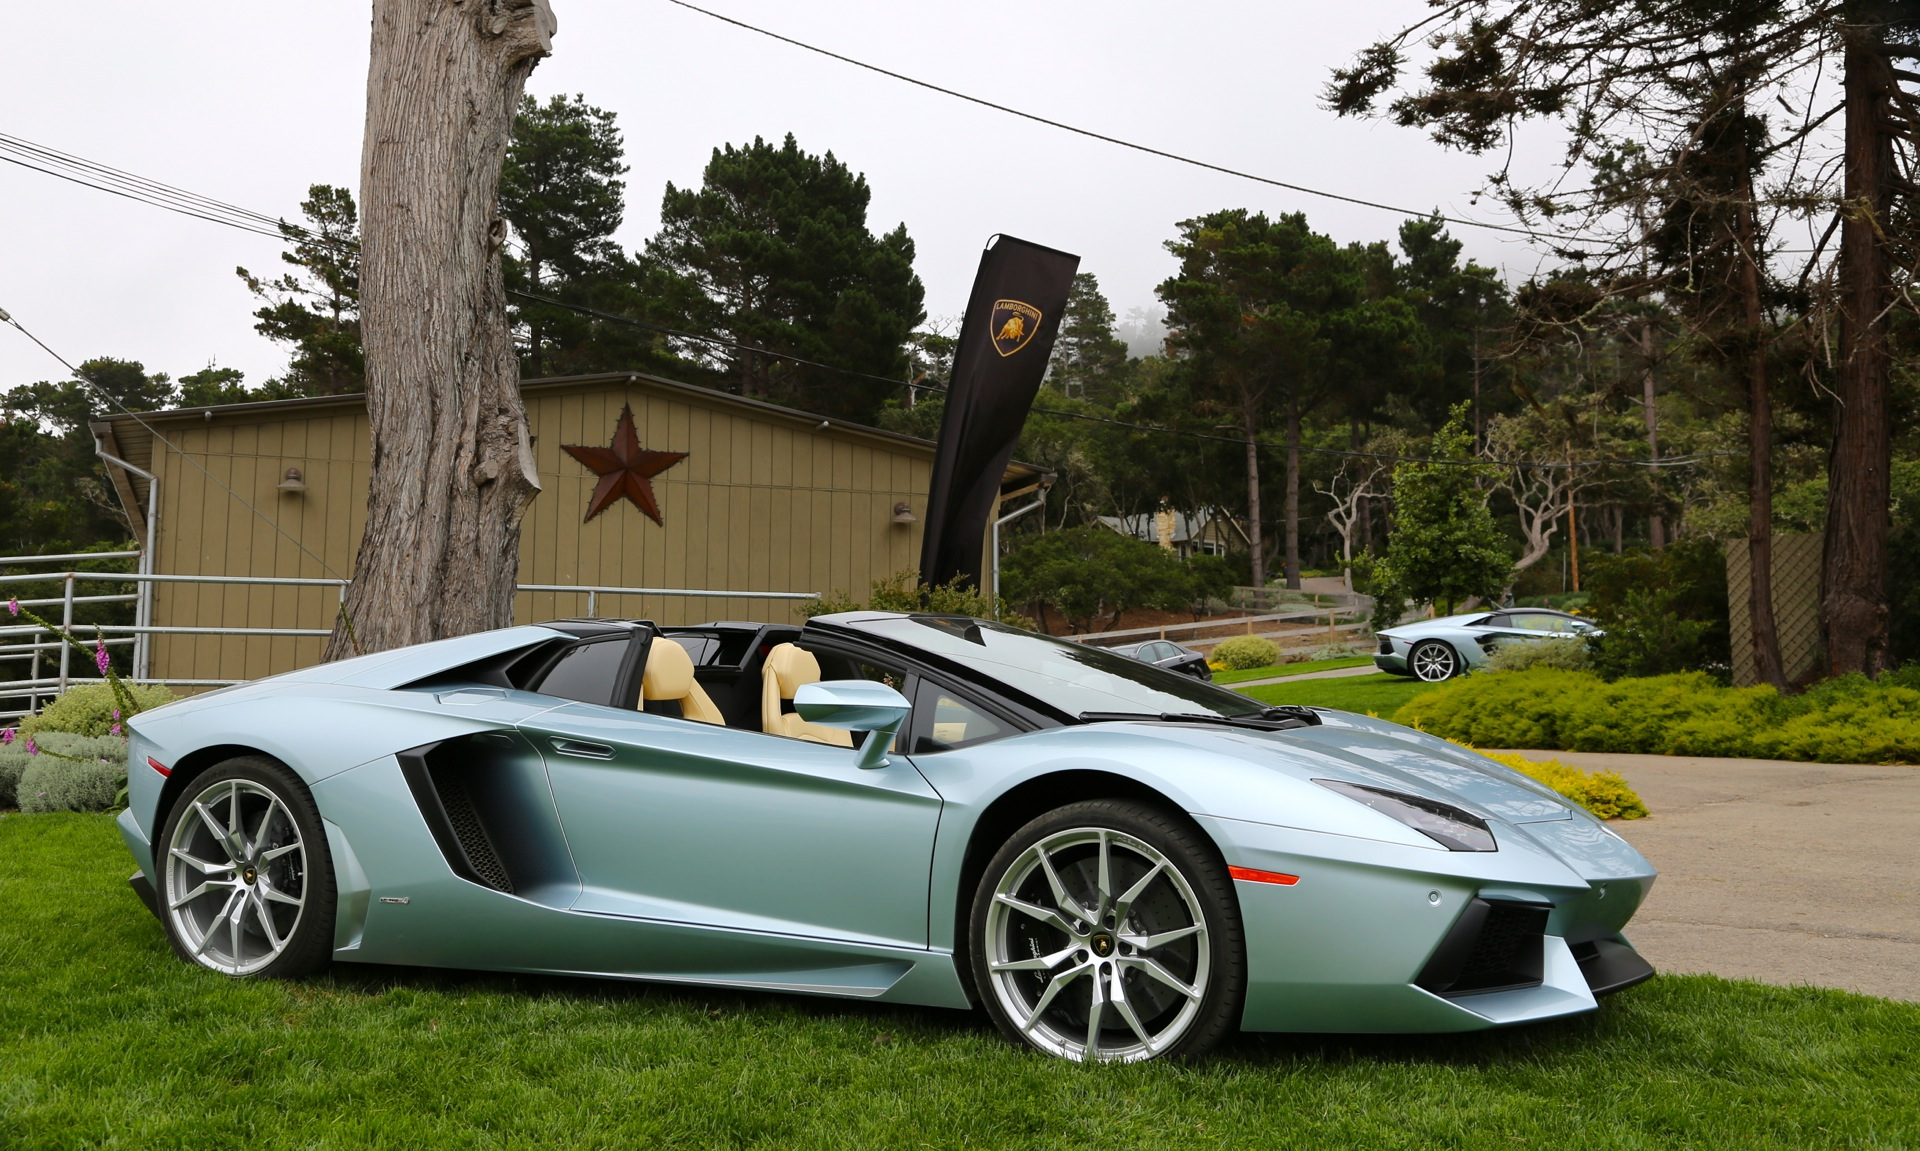 2014 lamborghini aventador review ratings specs prices. Black Bedroom Furniture Sets. Home Design Ideas